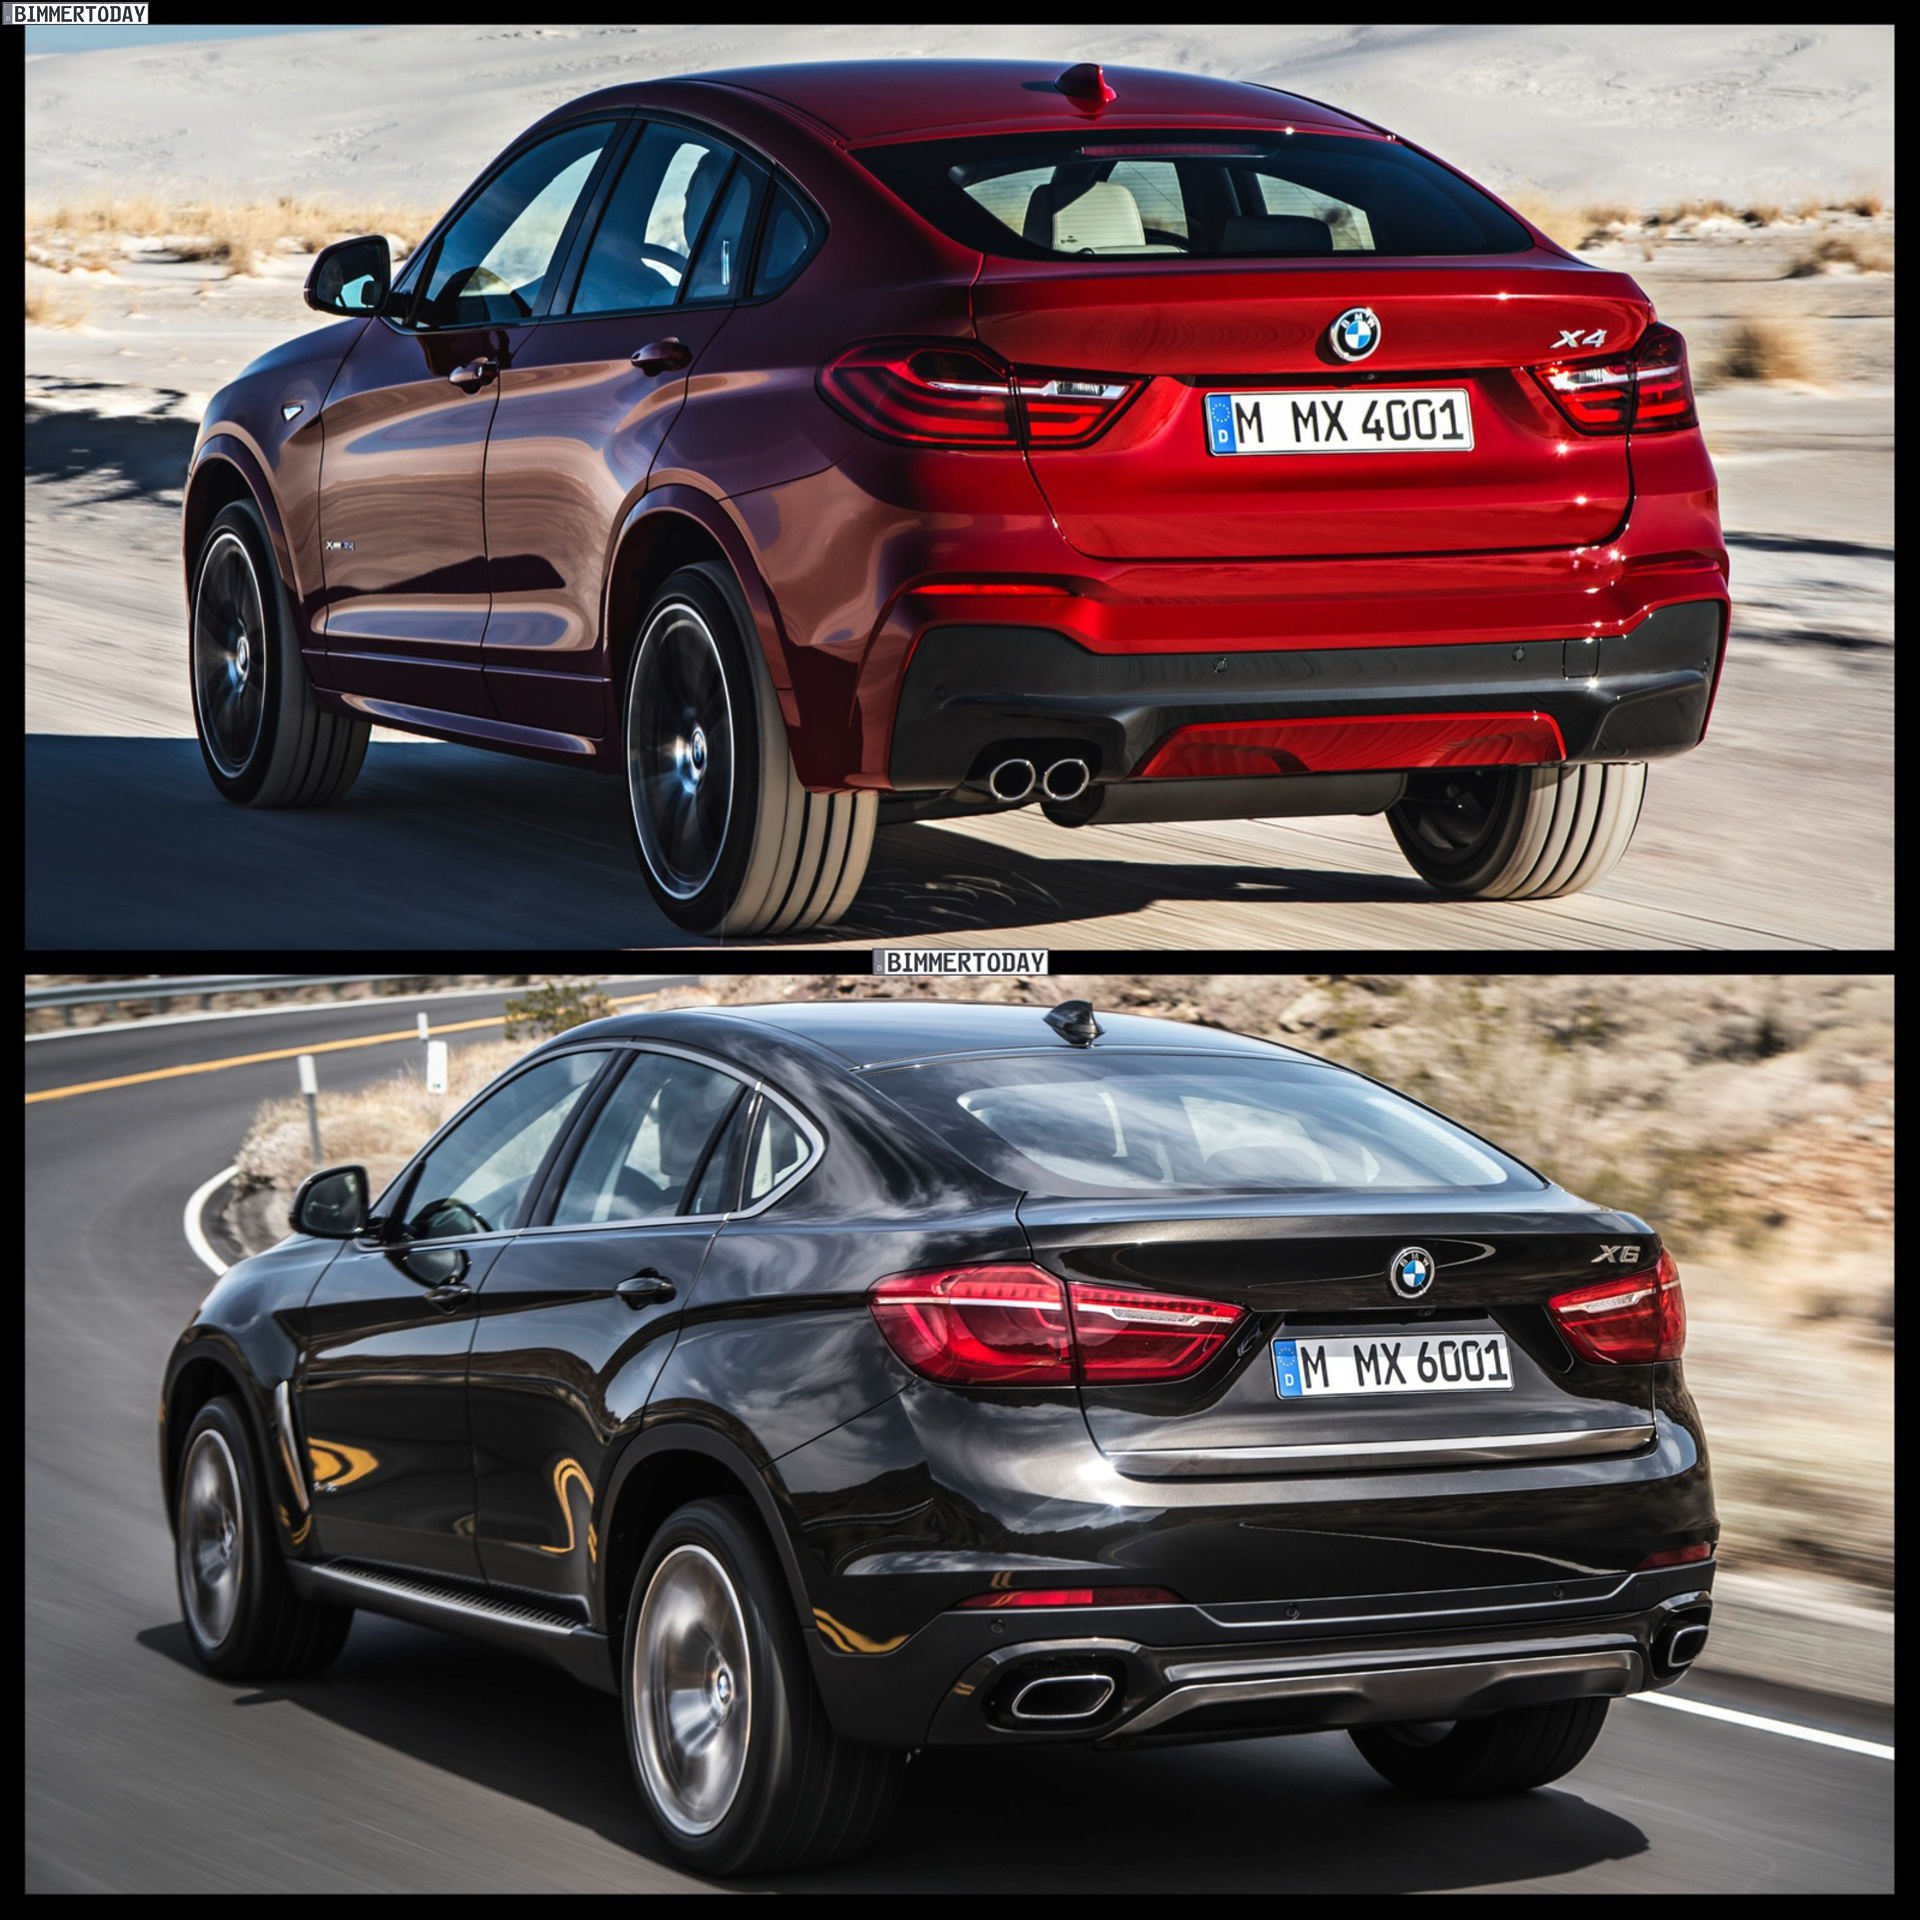 2015 Bmw X4 Vs 2015 Bmw X6 Which One To Buy